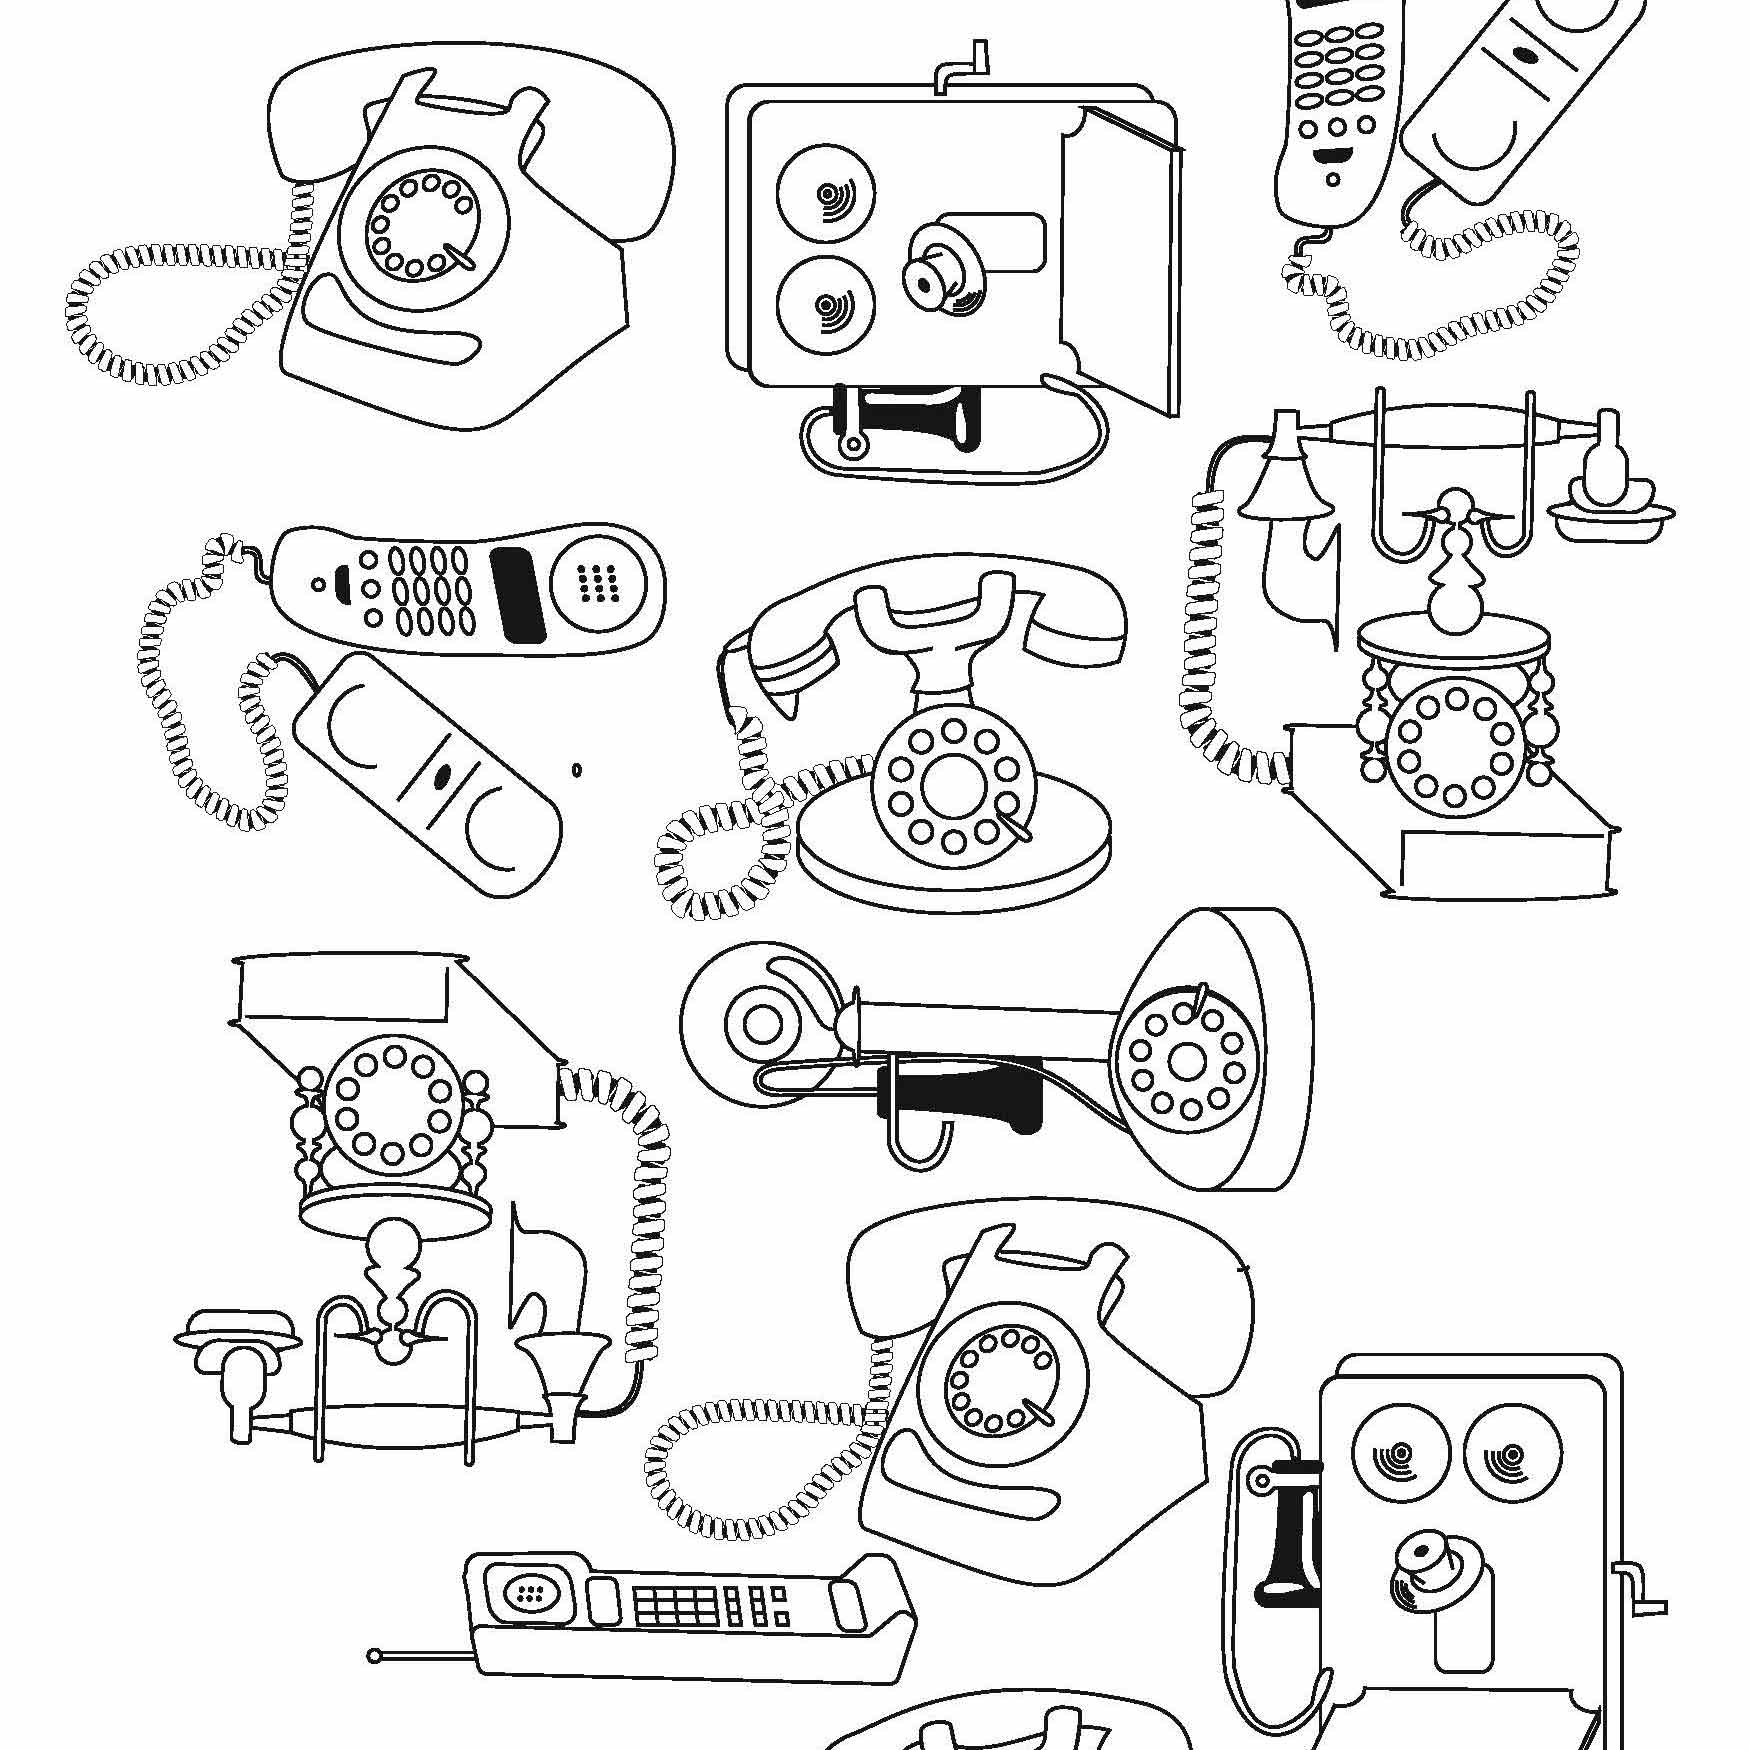 Here's an idea for an ipone case; illustrations of all the phones that come before.